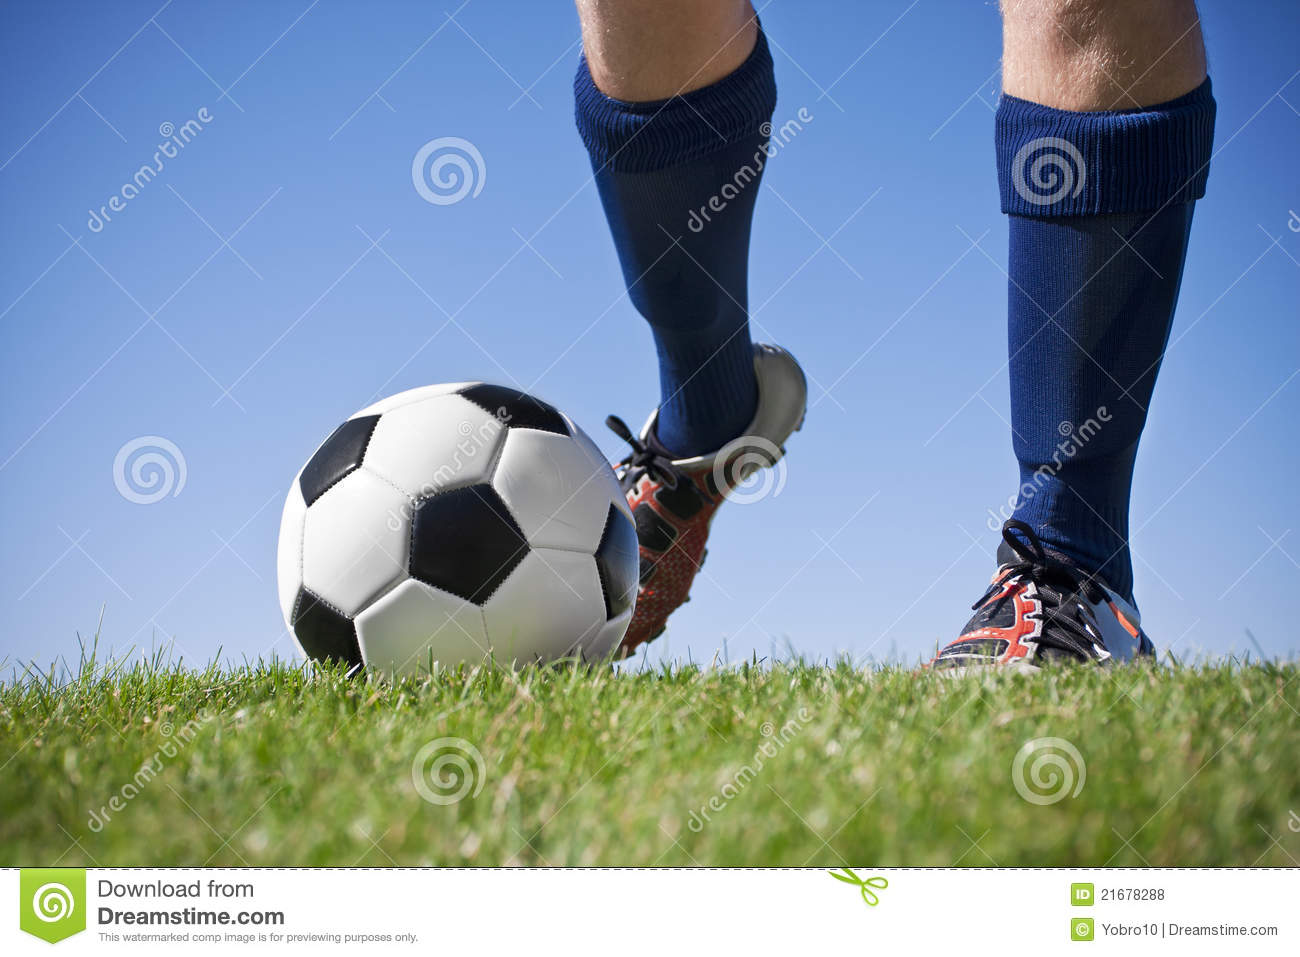 Kicking the soccer ball